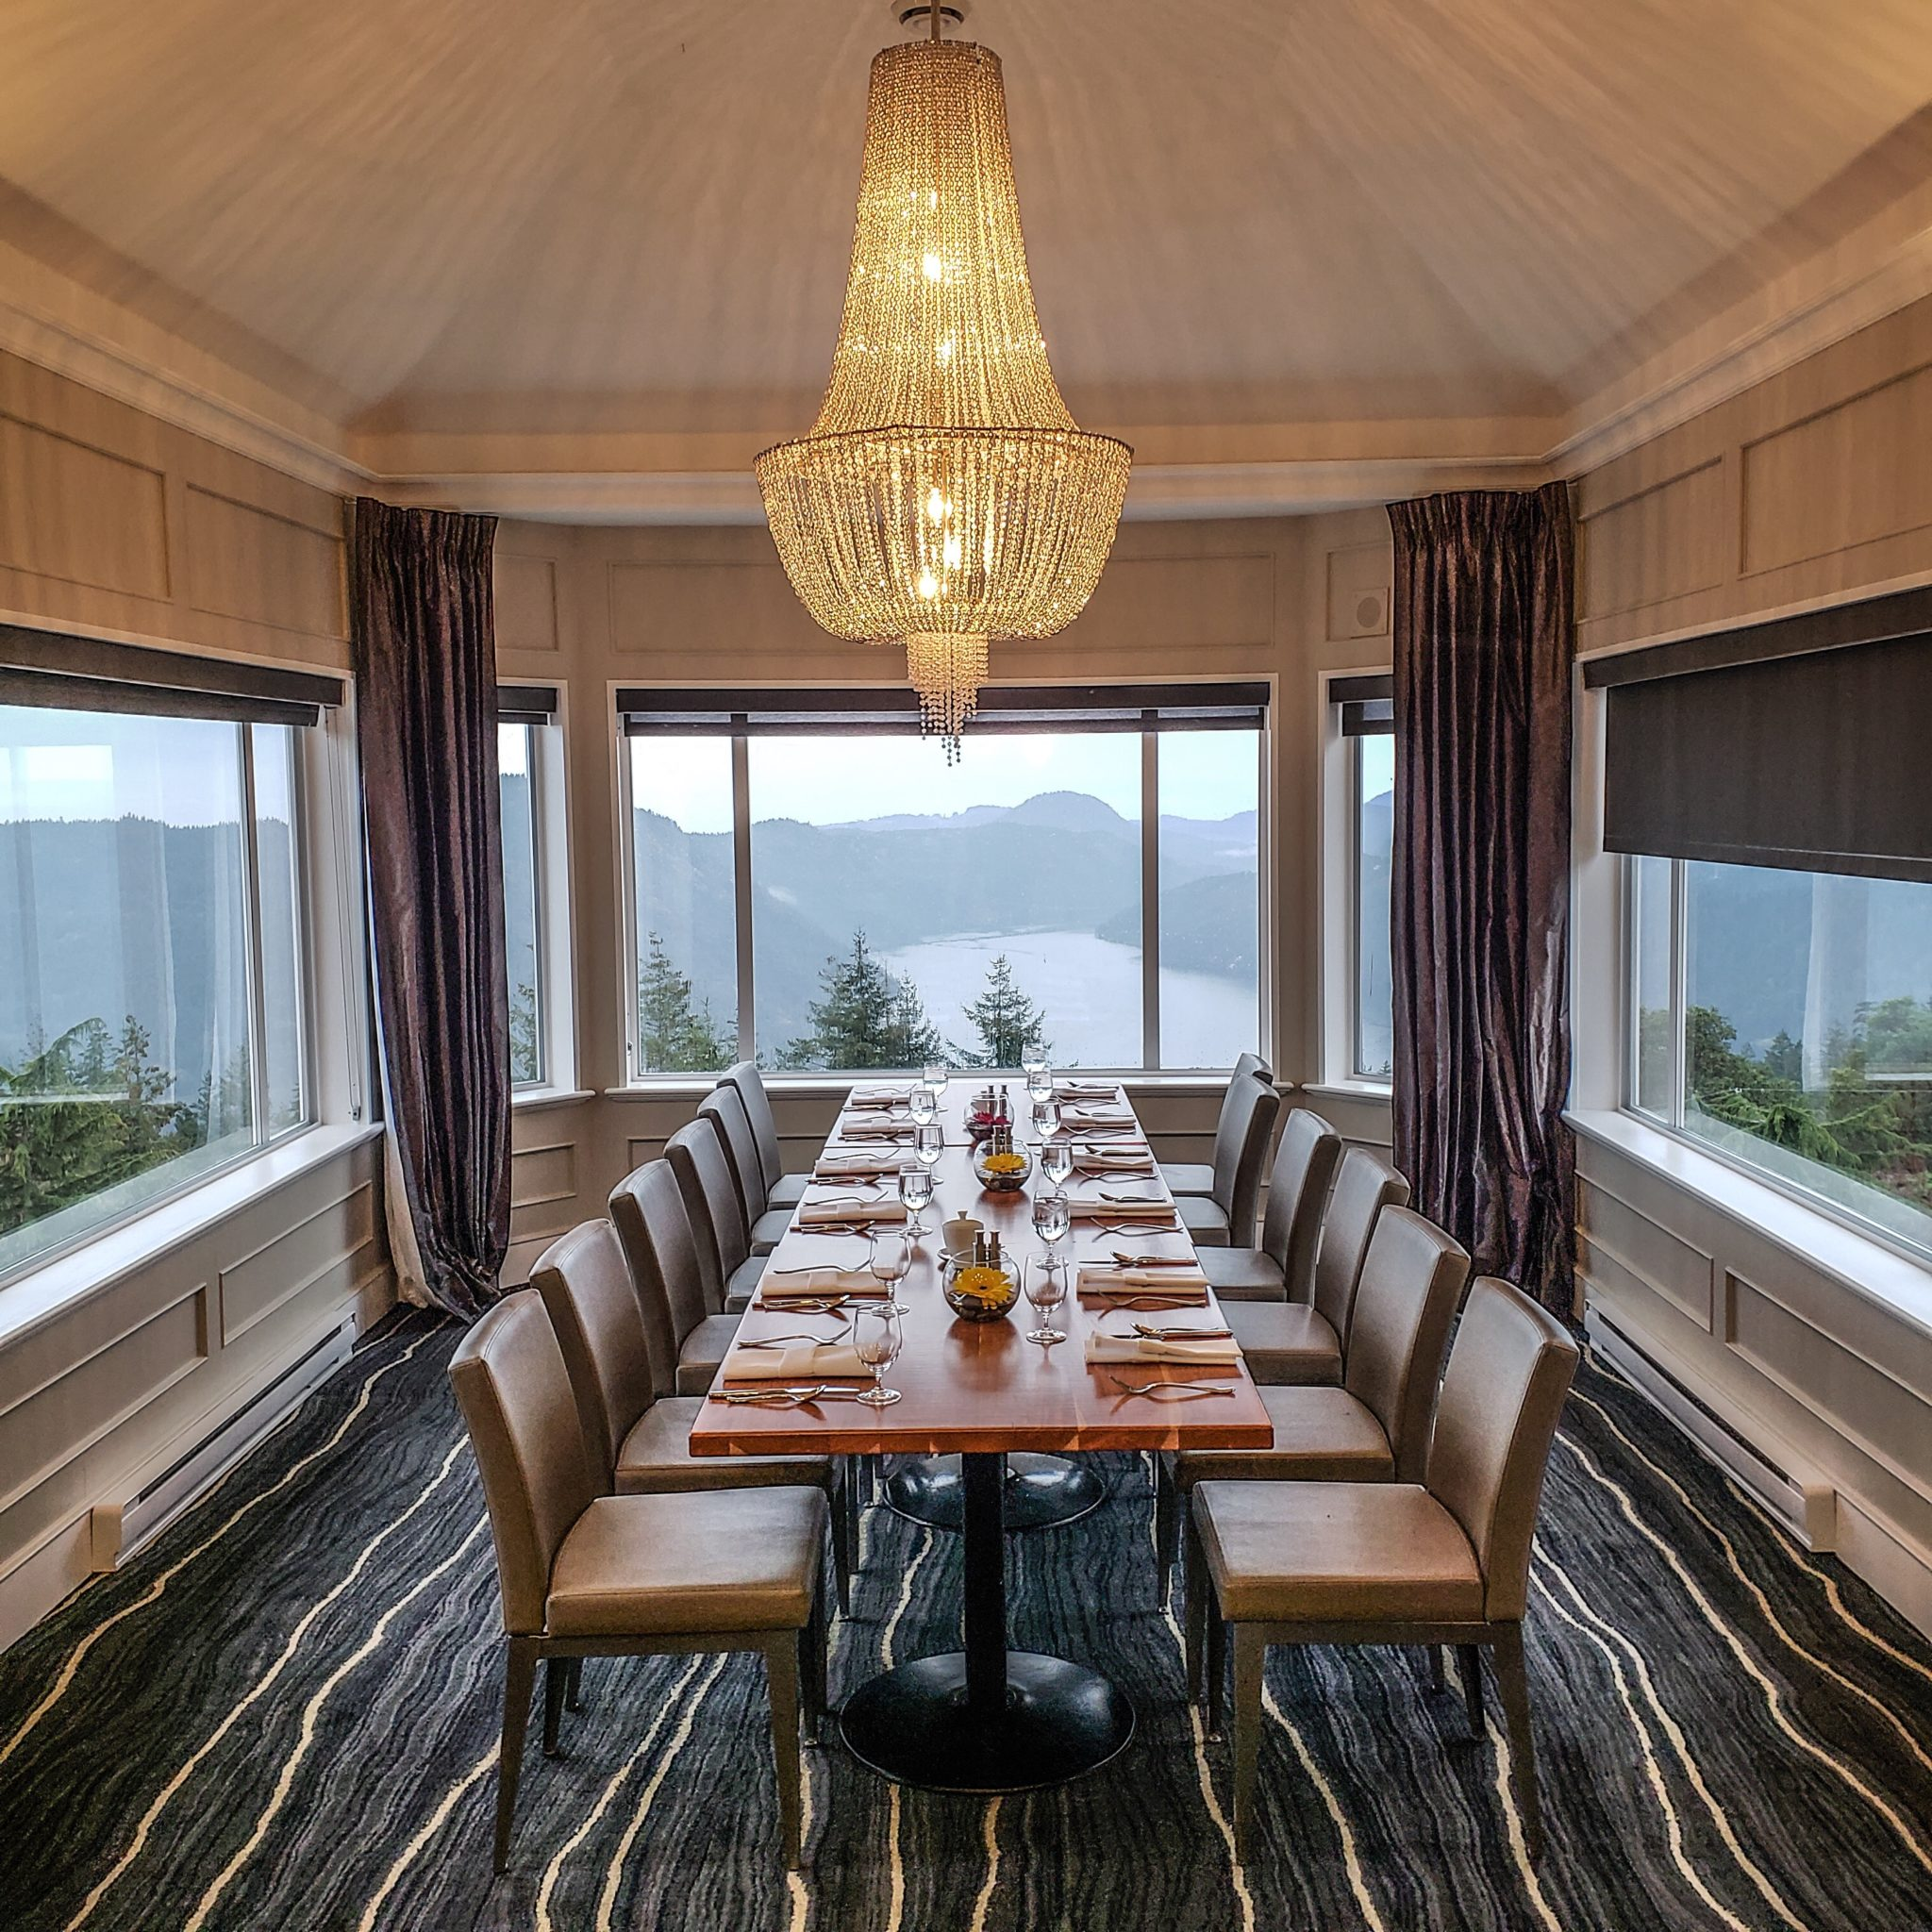 Alpina Restaurant - BC - Canada - Vancouver Island - Villa Eyrie - Cowichan Tourism - British Columbia